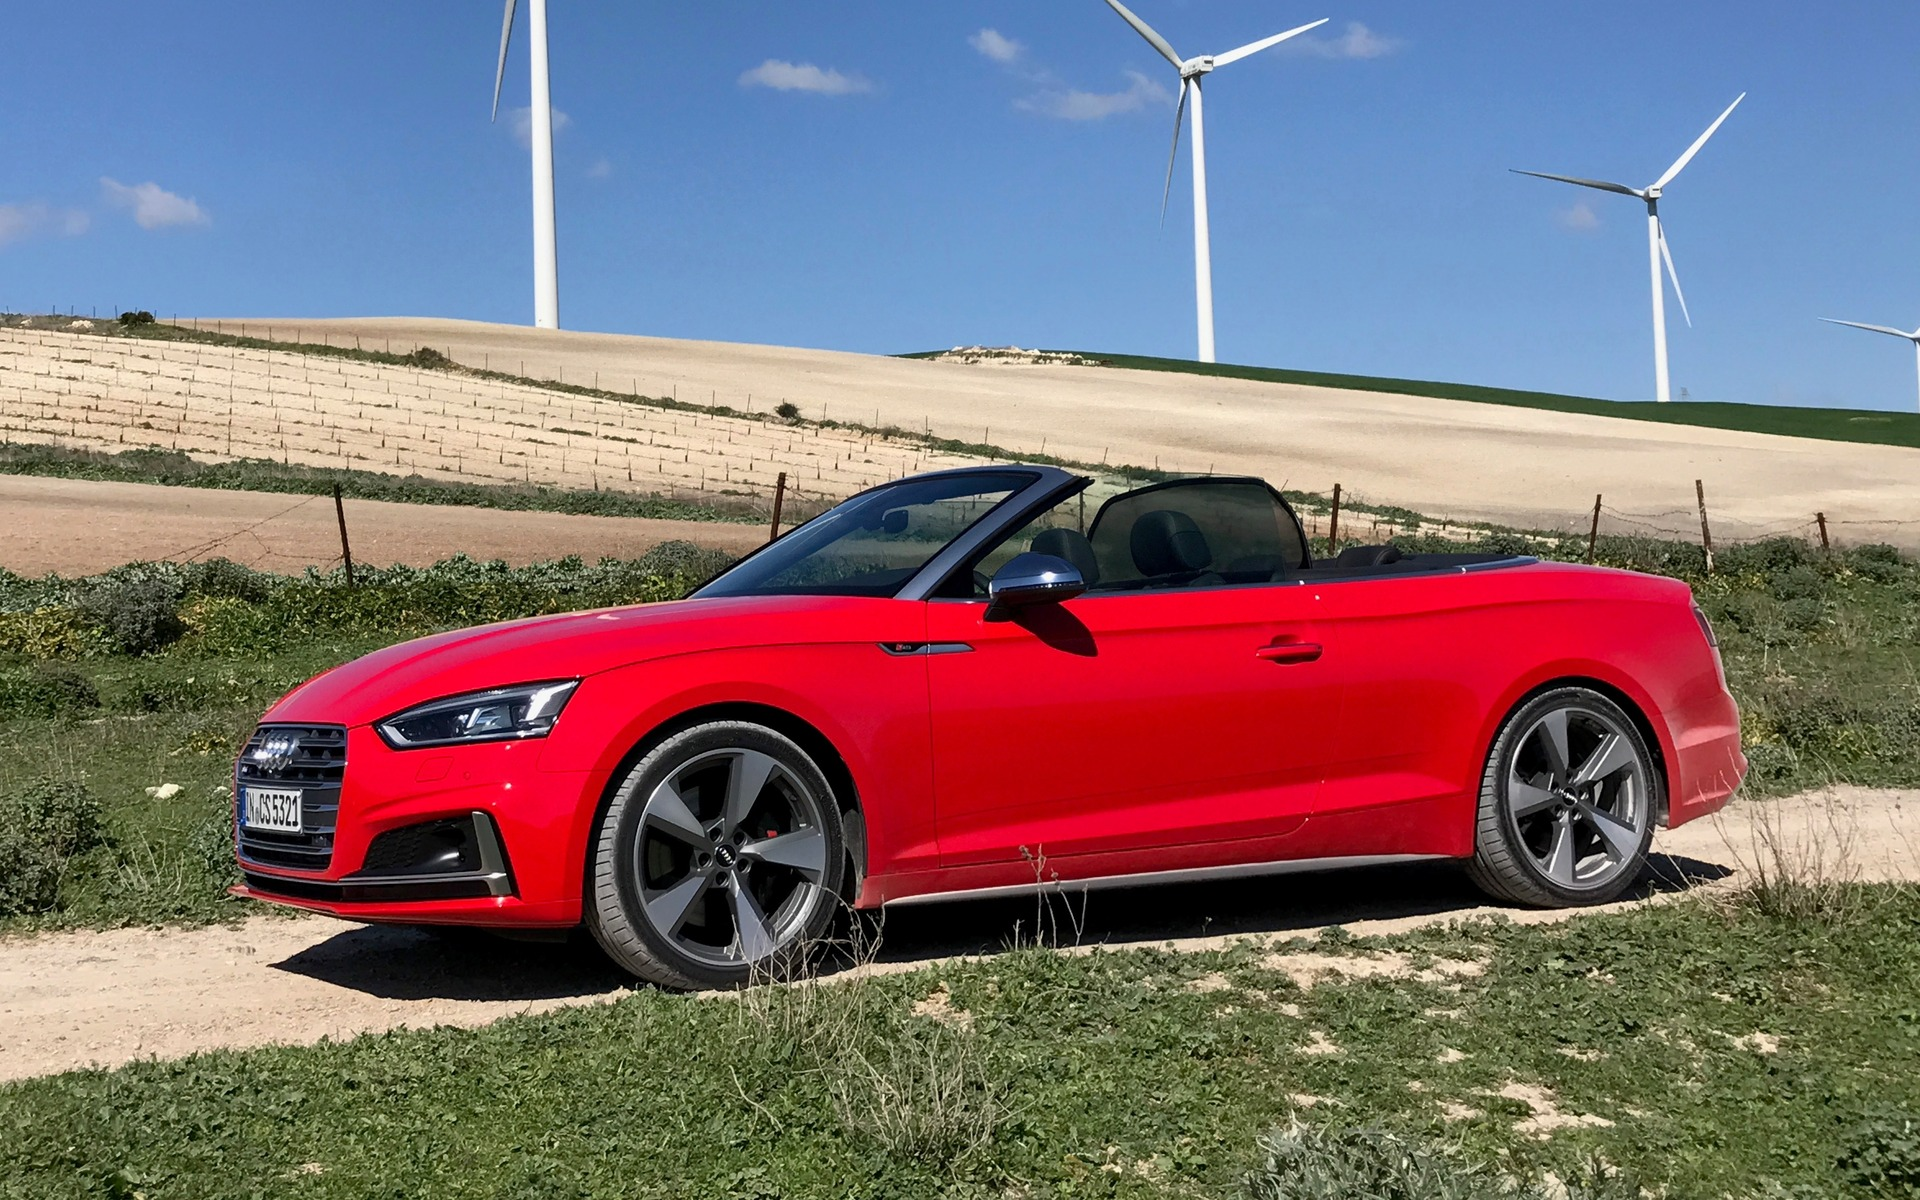 Auto Reviews 2018 >> 2018 Audi A5 and S5 Cabriolet: Just a Fraction of Audi's Arsenal! - 4/42